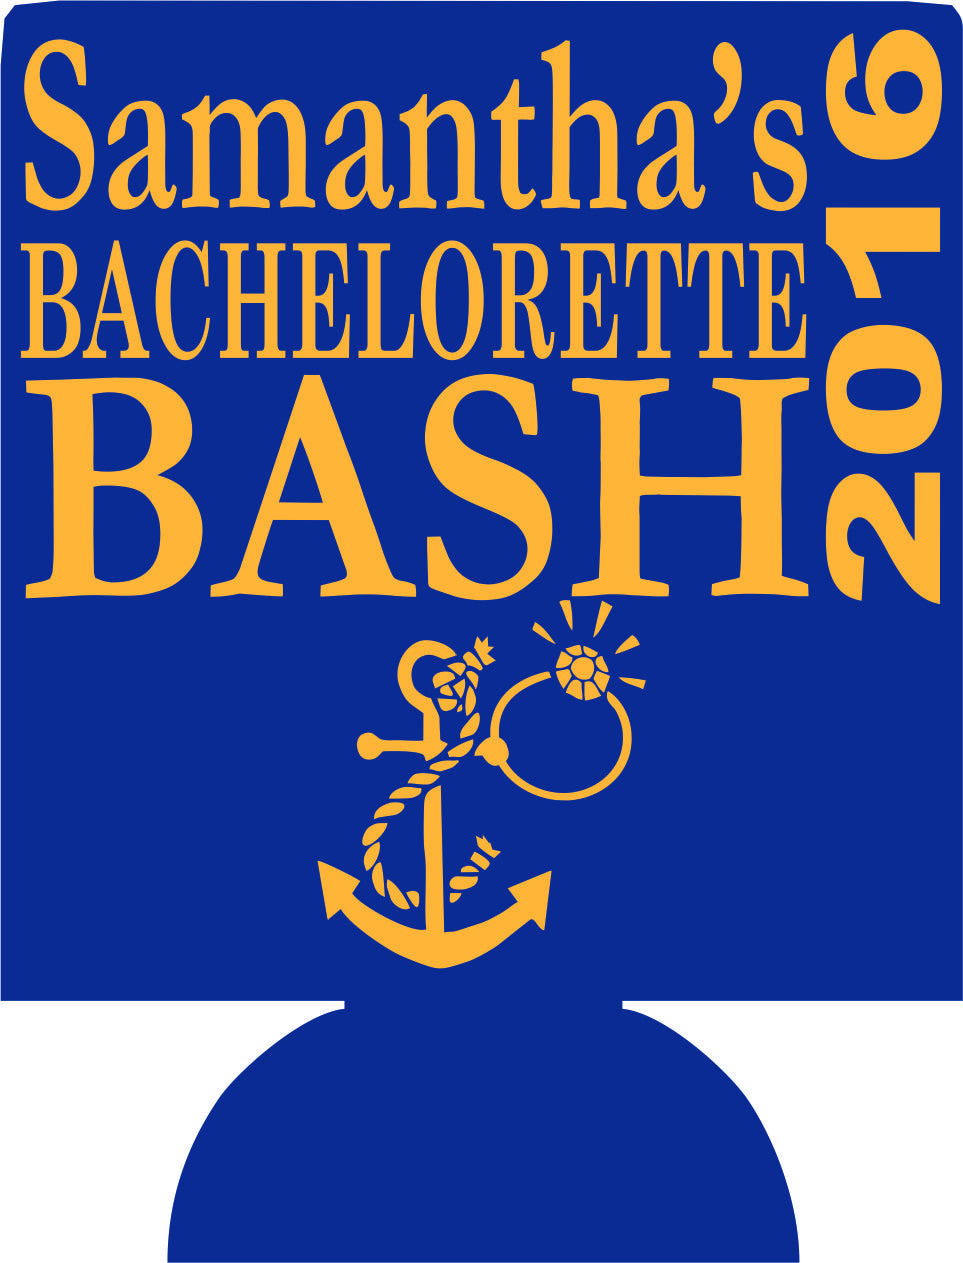 Nautical Bachelorette Bash Koozies